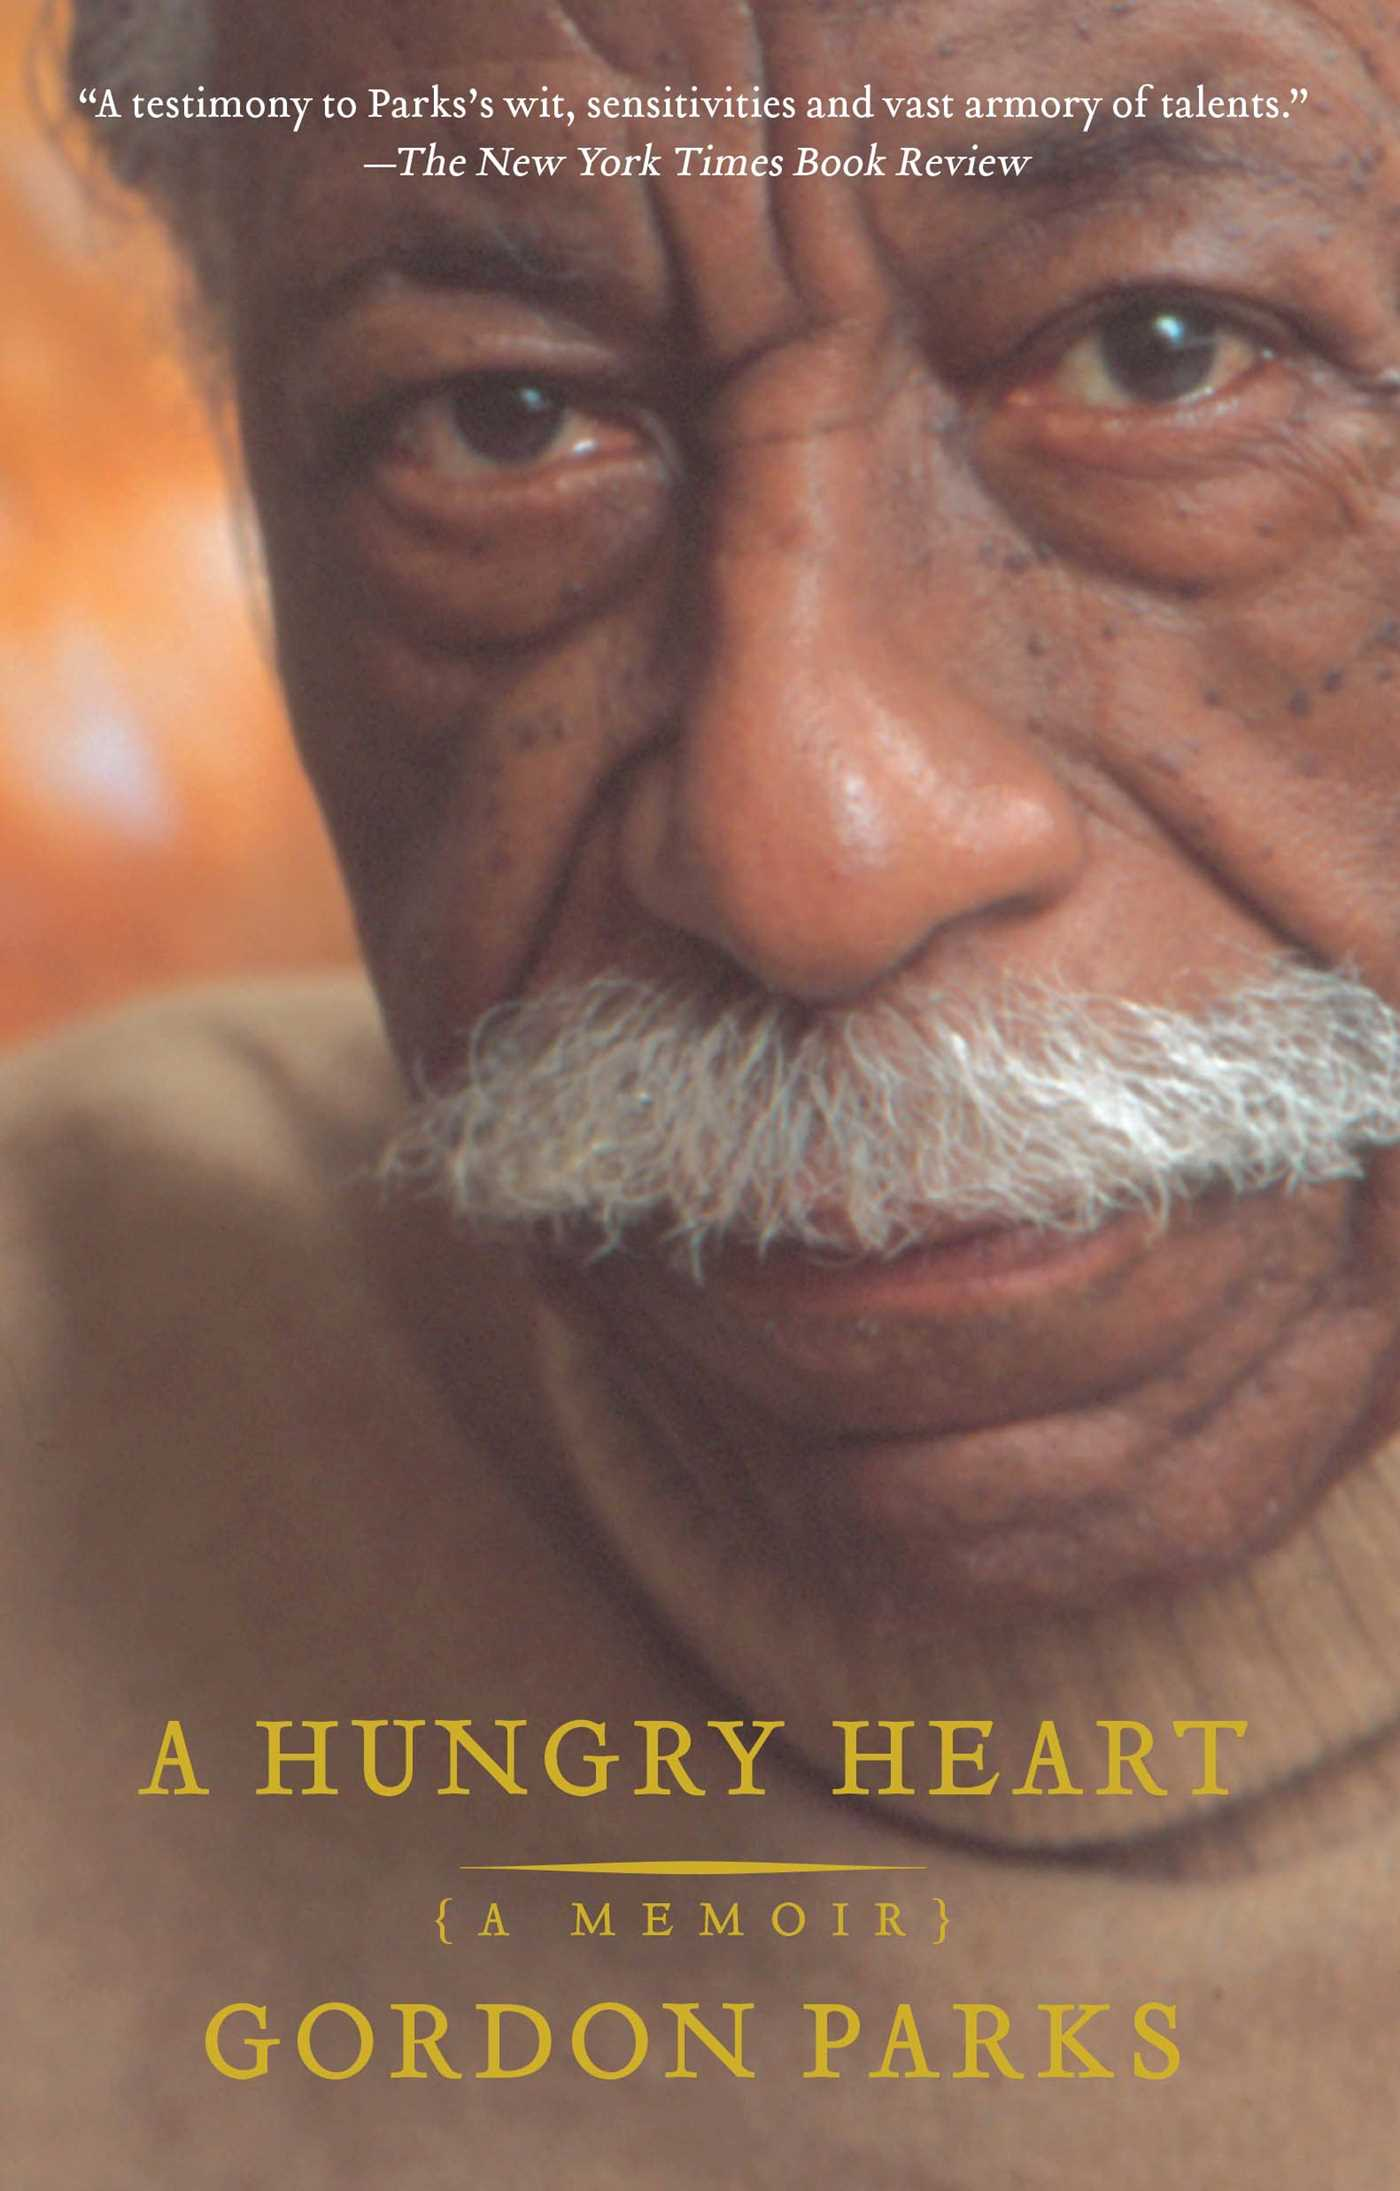 A hungry heart 9780743269032 hr